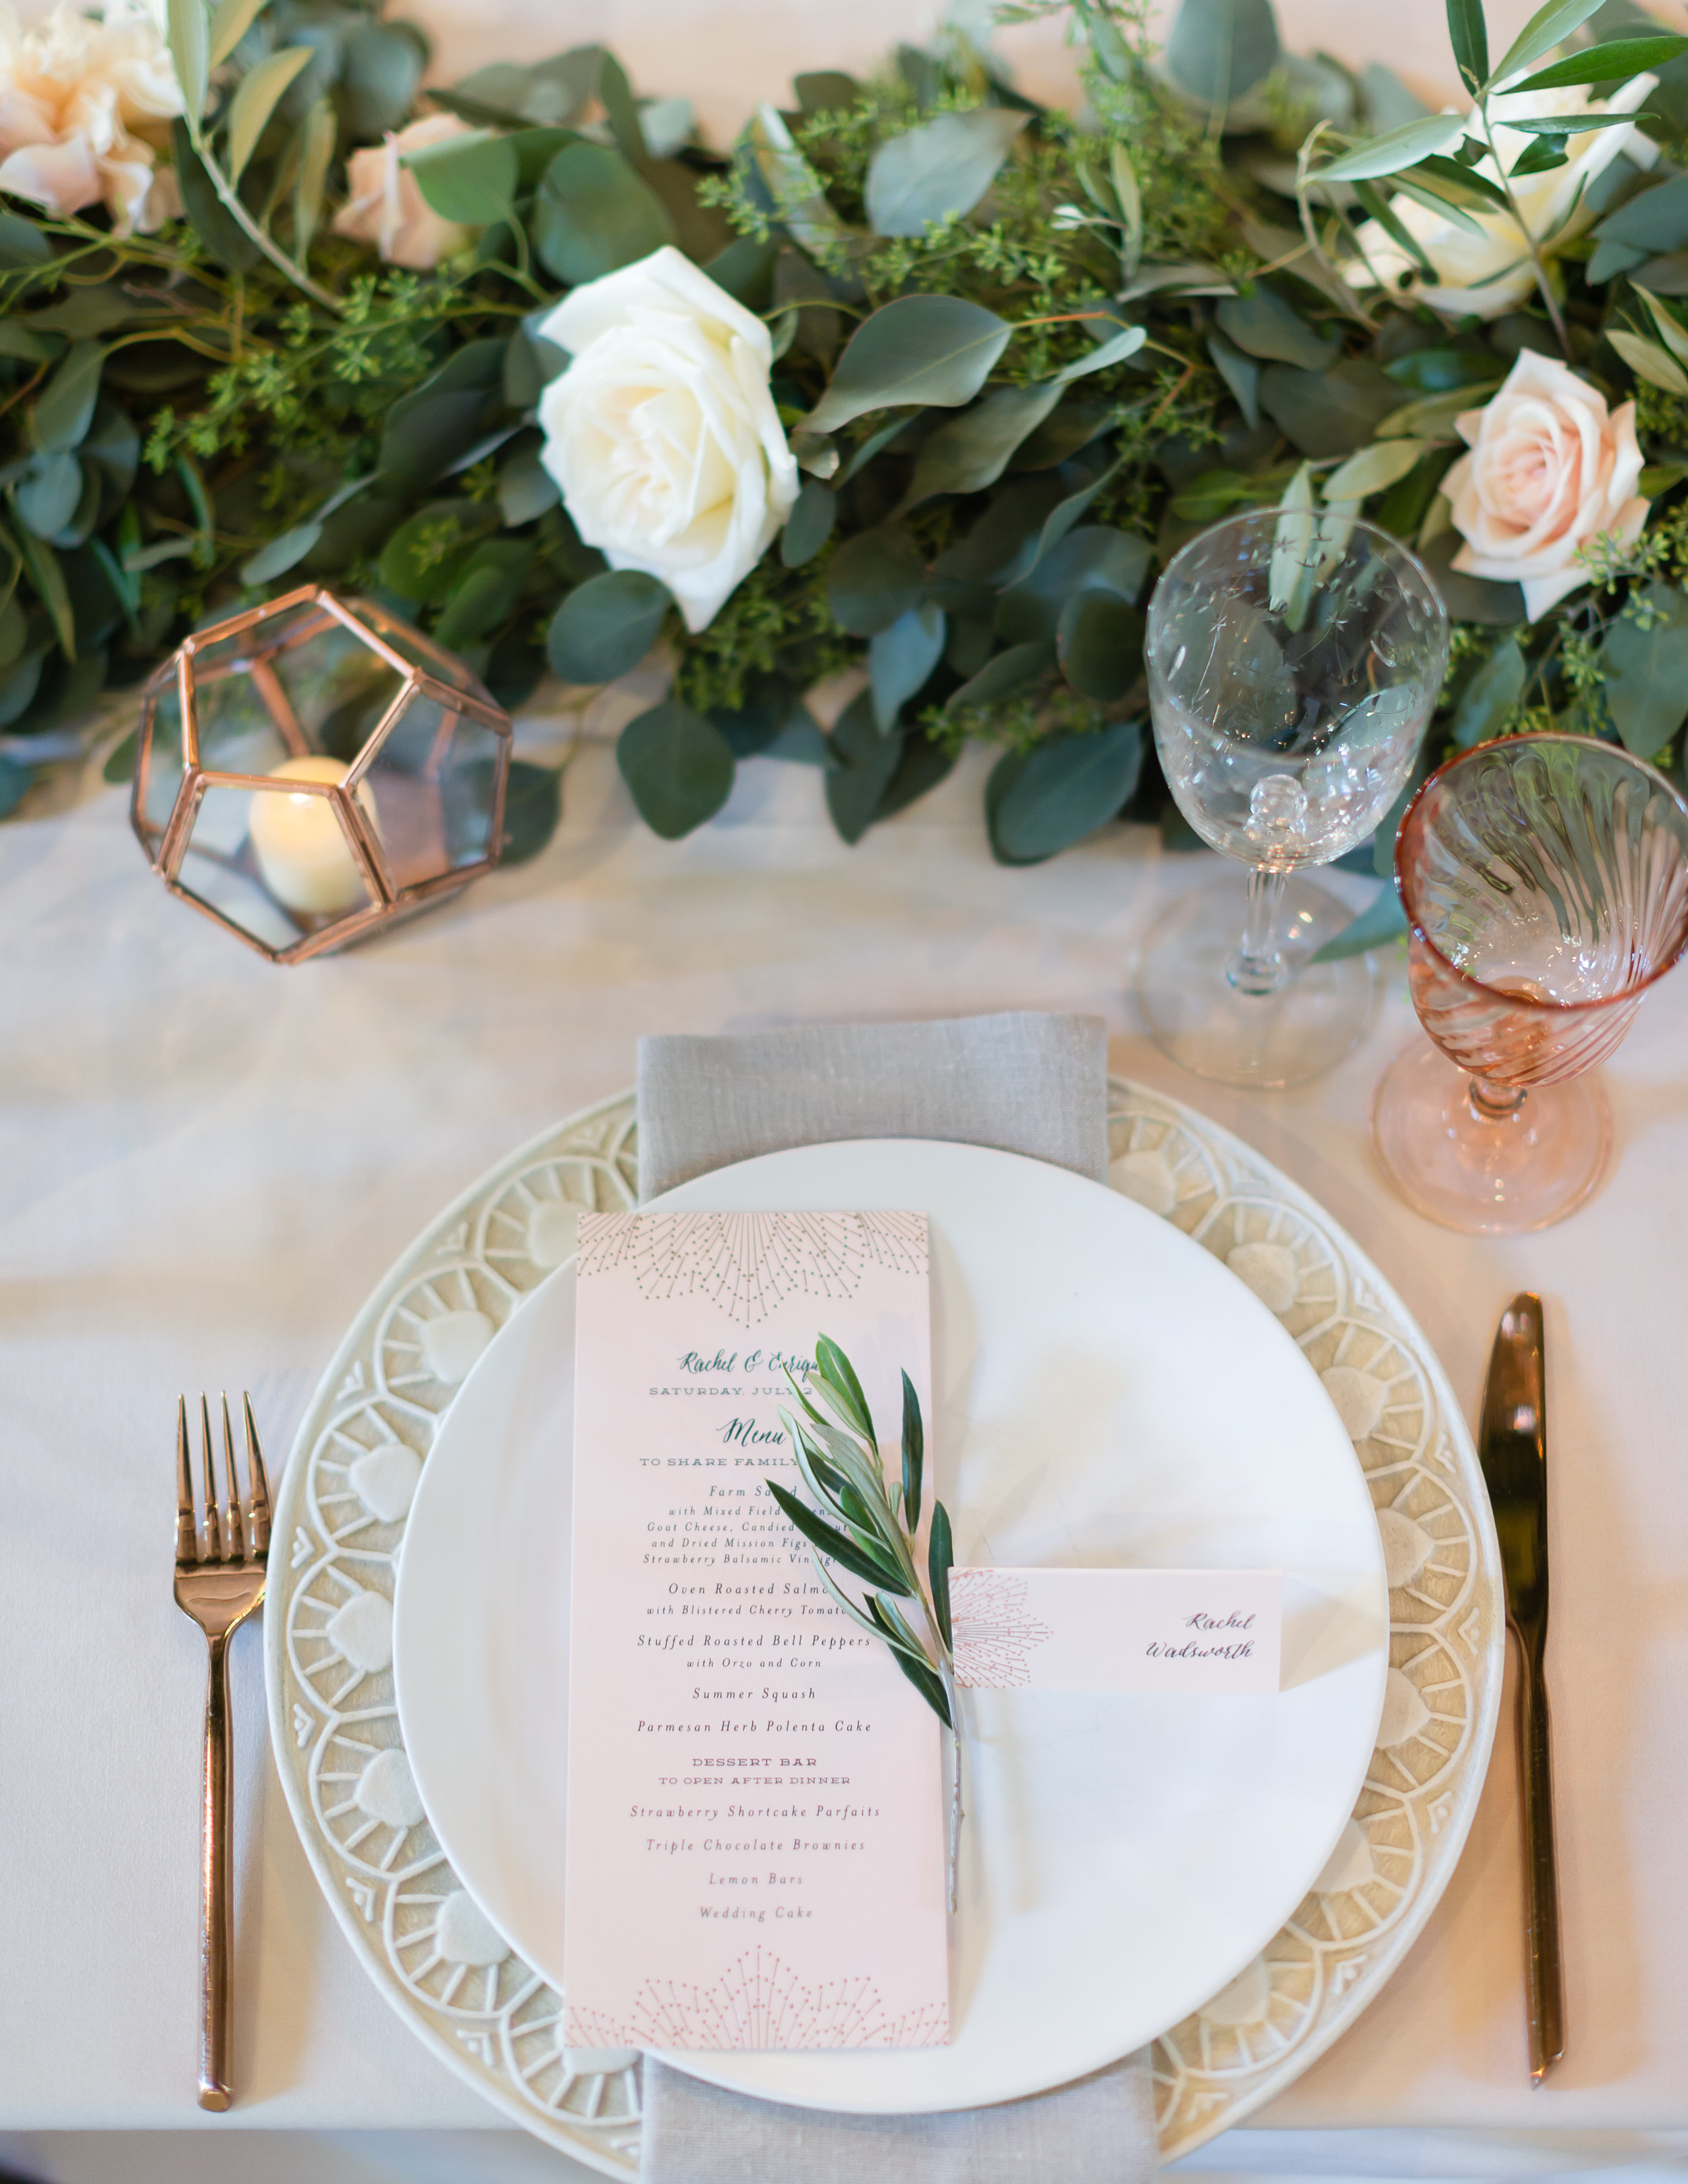 Place setting by Farm to Table Catering | Miners Foundry Wedding | Nevada City, Ca